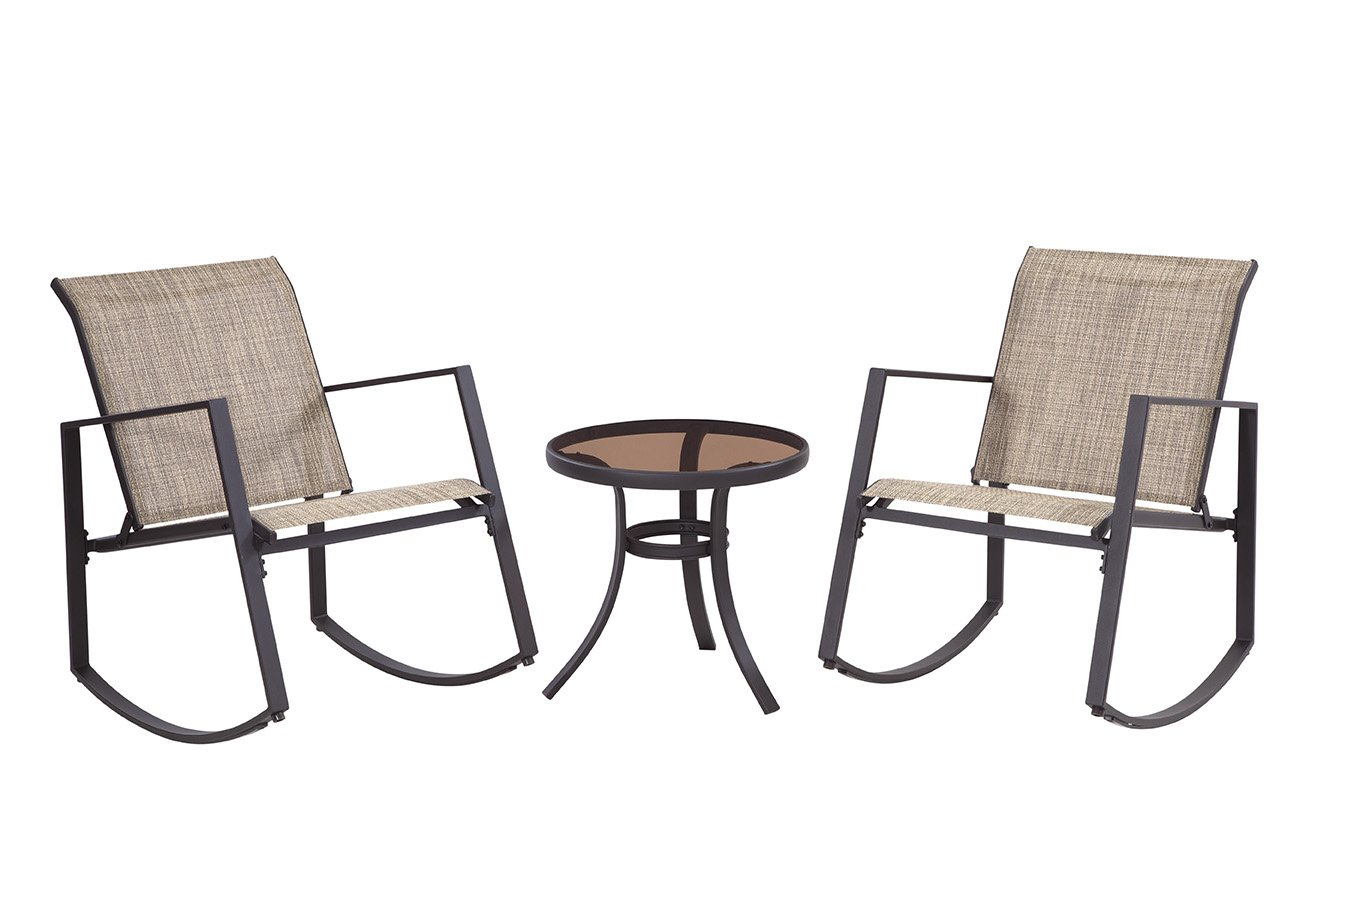 Liberty Garden Patio SS-K-601-1ERC-3BN Aurora 3-Piece Sling Seating Set, Brown